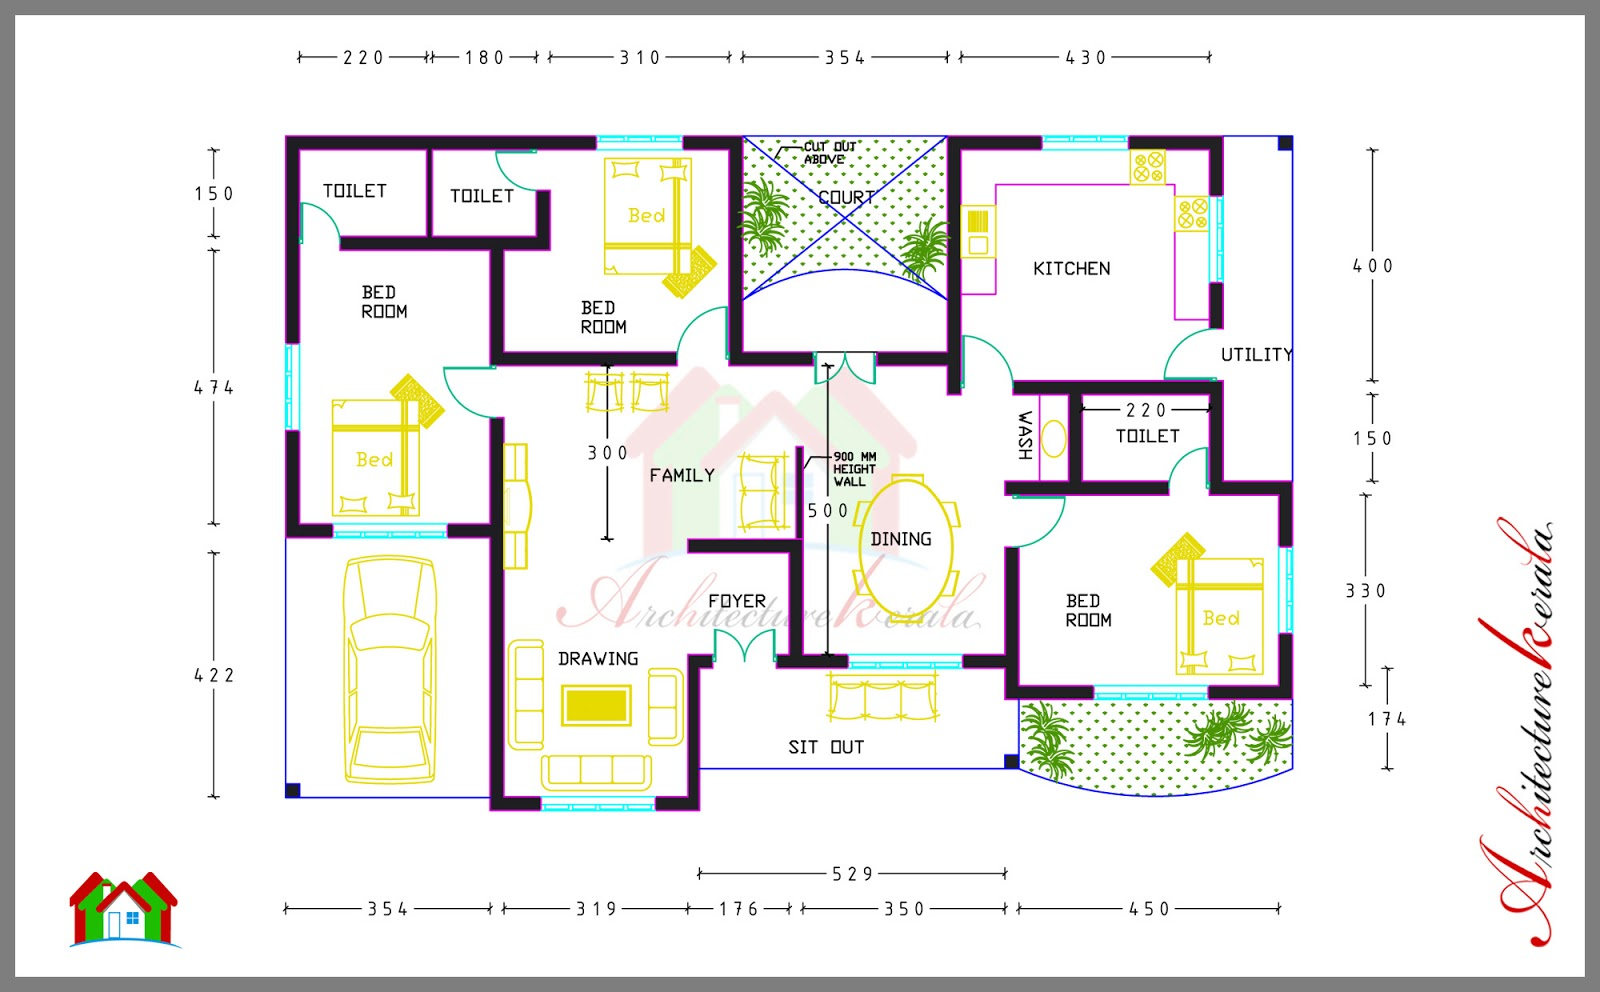 3 bed room house plan with room dimensions architecture kerala Home layout planner